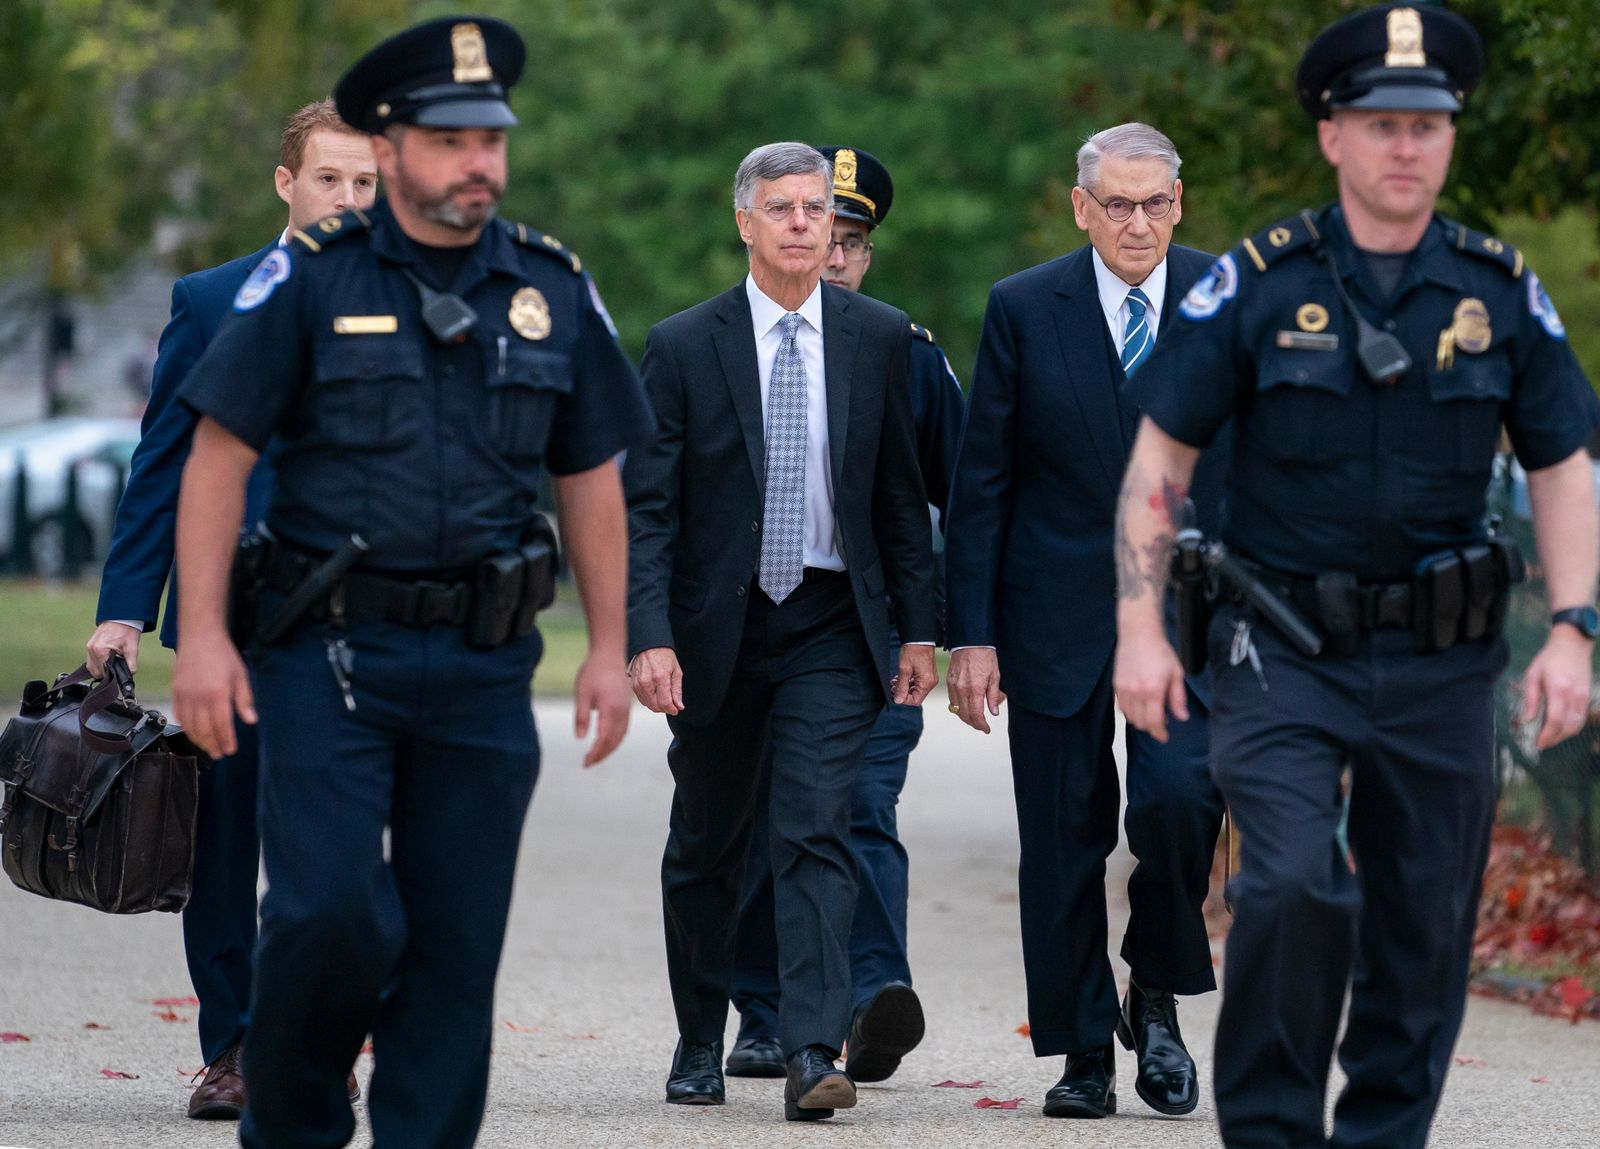 Ambassador William Taylor is escorted by U.S. Capitol Police as he arrives to testify before House committees as part of the Democrats' impeachment investigation of President Donald Trump, at the Capitol in Washington, Tuesday, Oct. 22, 2019.  (AP Photo/J. Scott Applewhite)